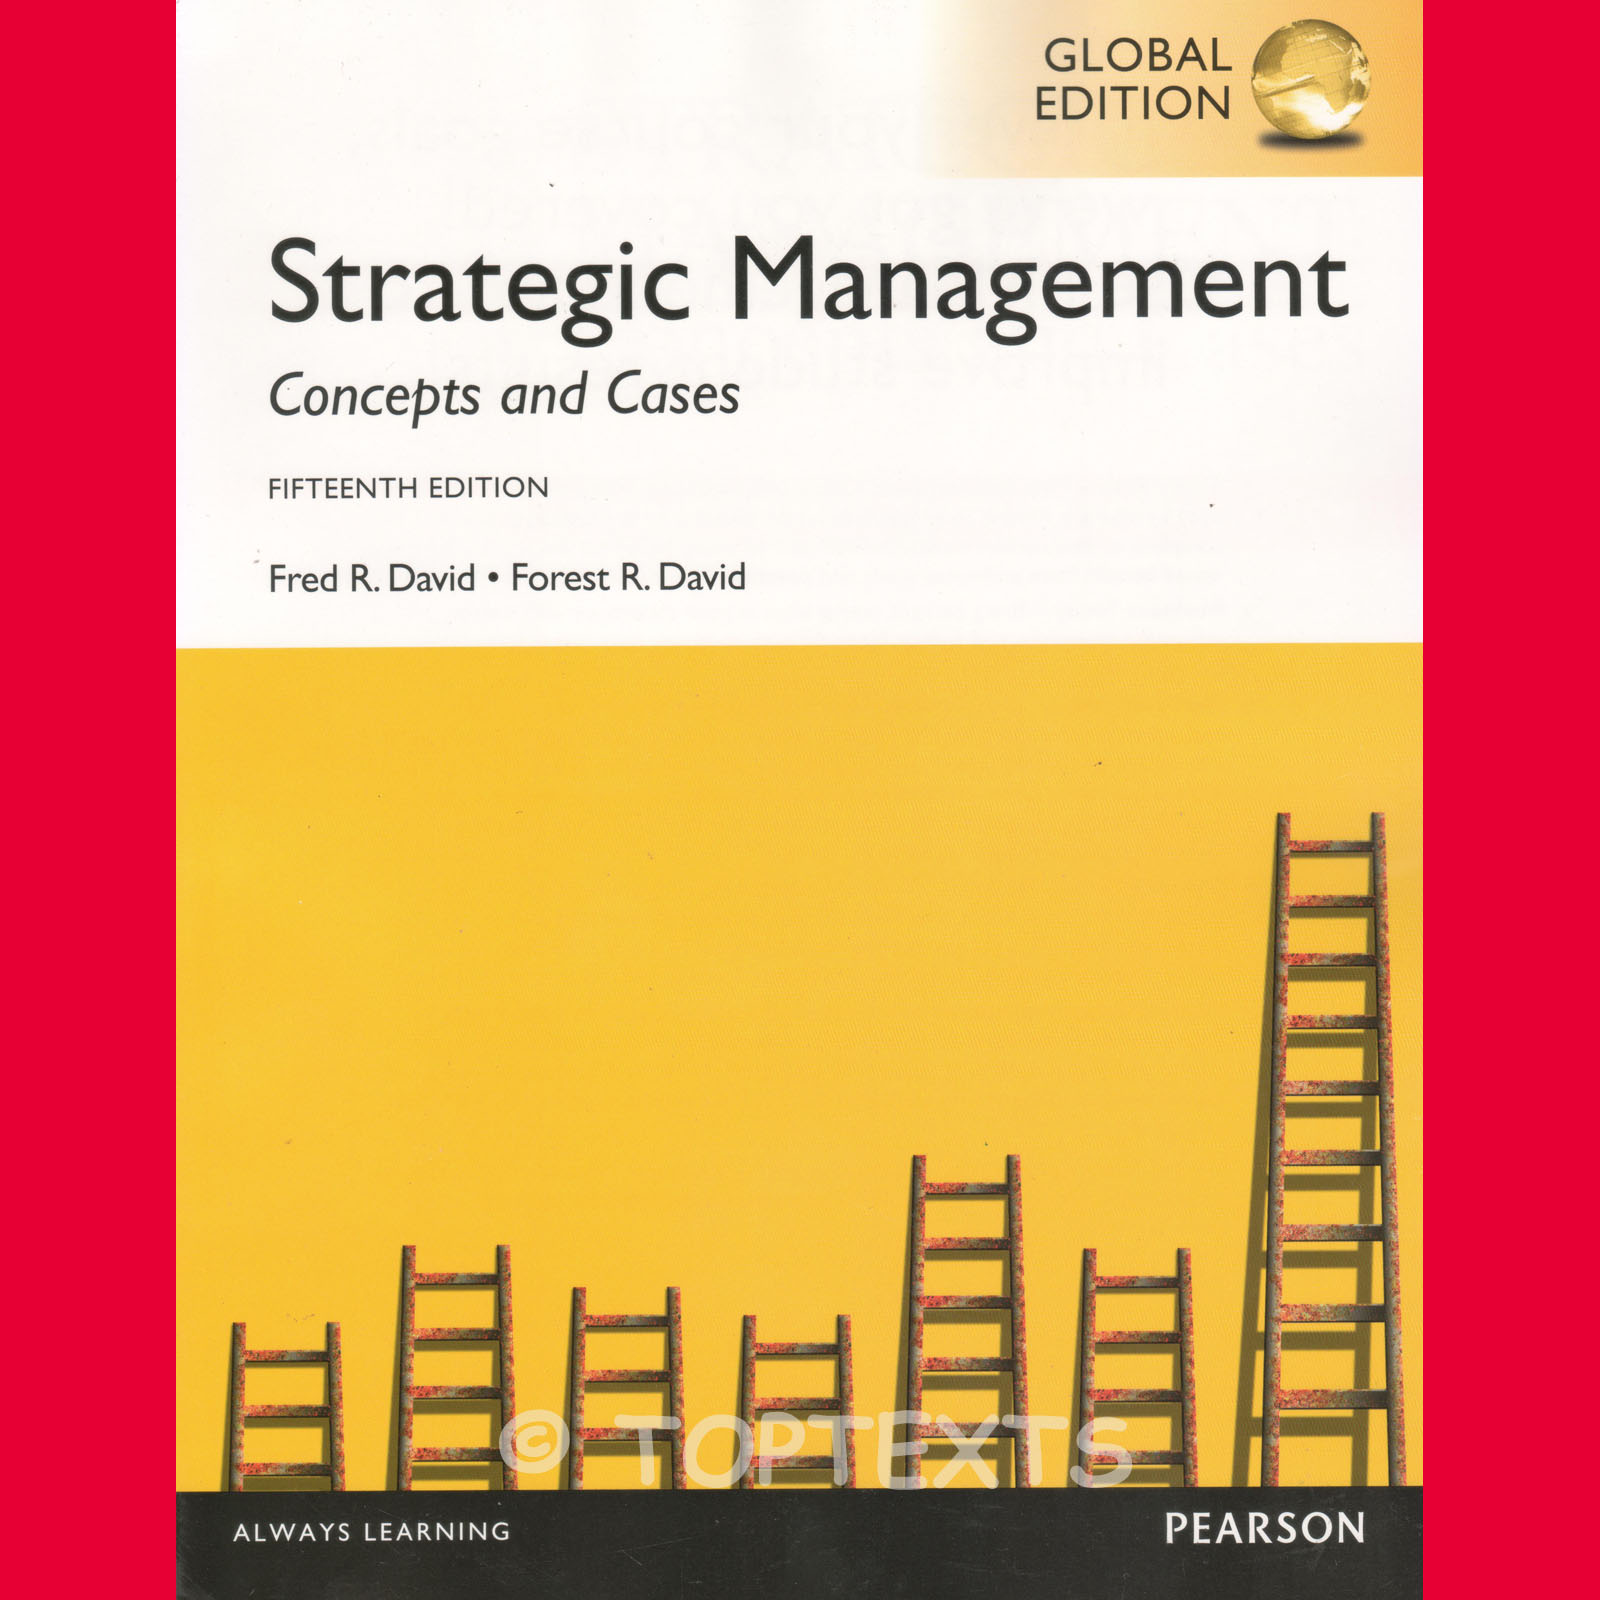 ebay strategic management This is a presentation for my group work on ebay in strategic management class if you want the full written report (about 50 pages), please contact me via le.